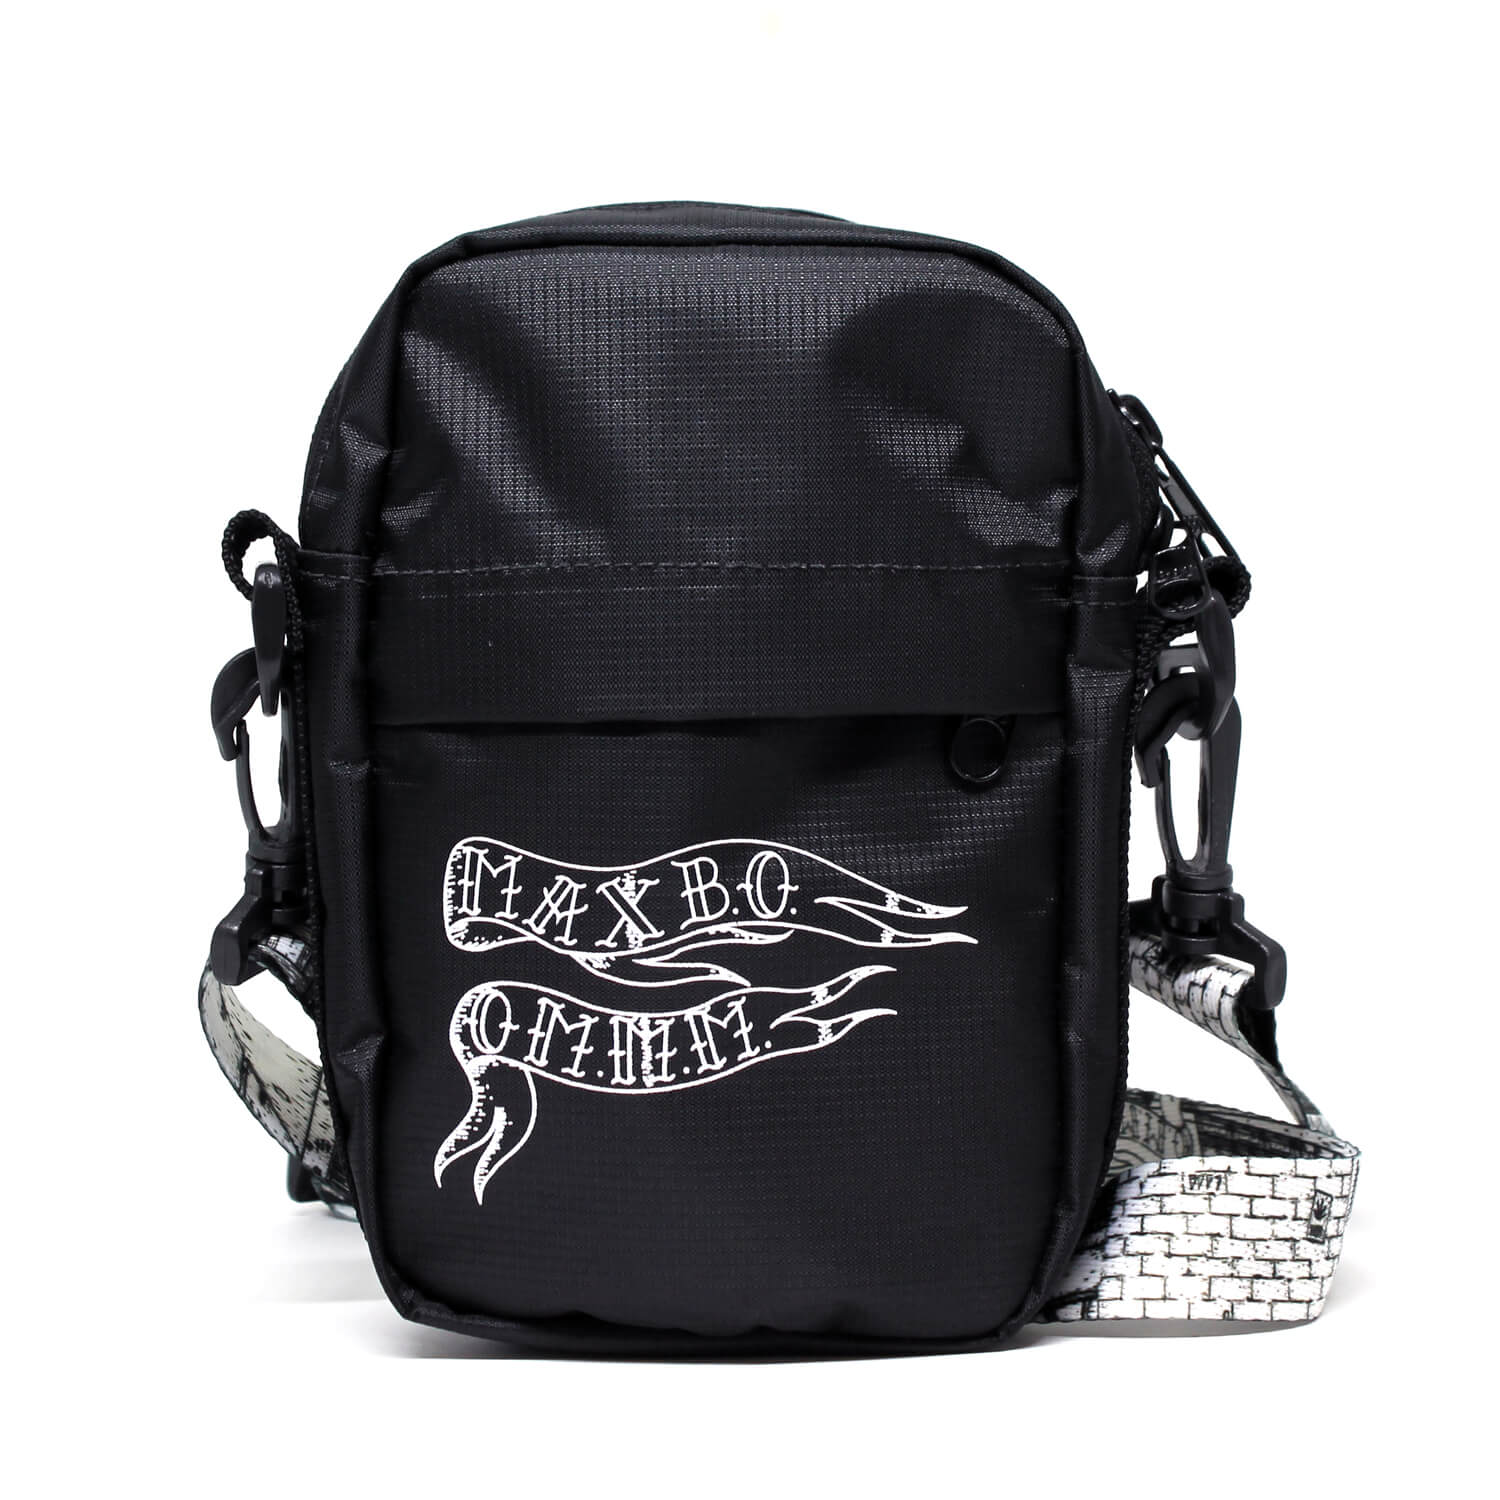 Shoulder Bag Collab MC Max B.O. vs Hoshwear